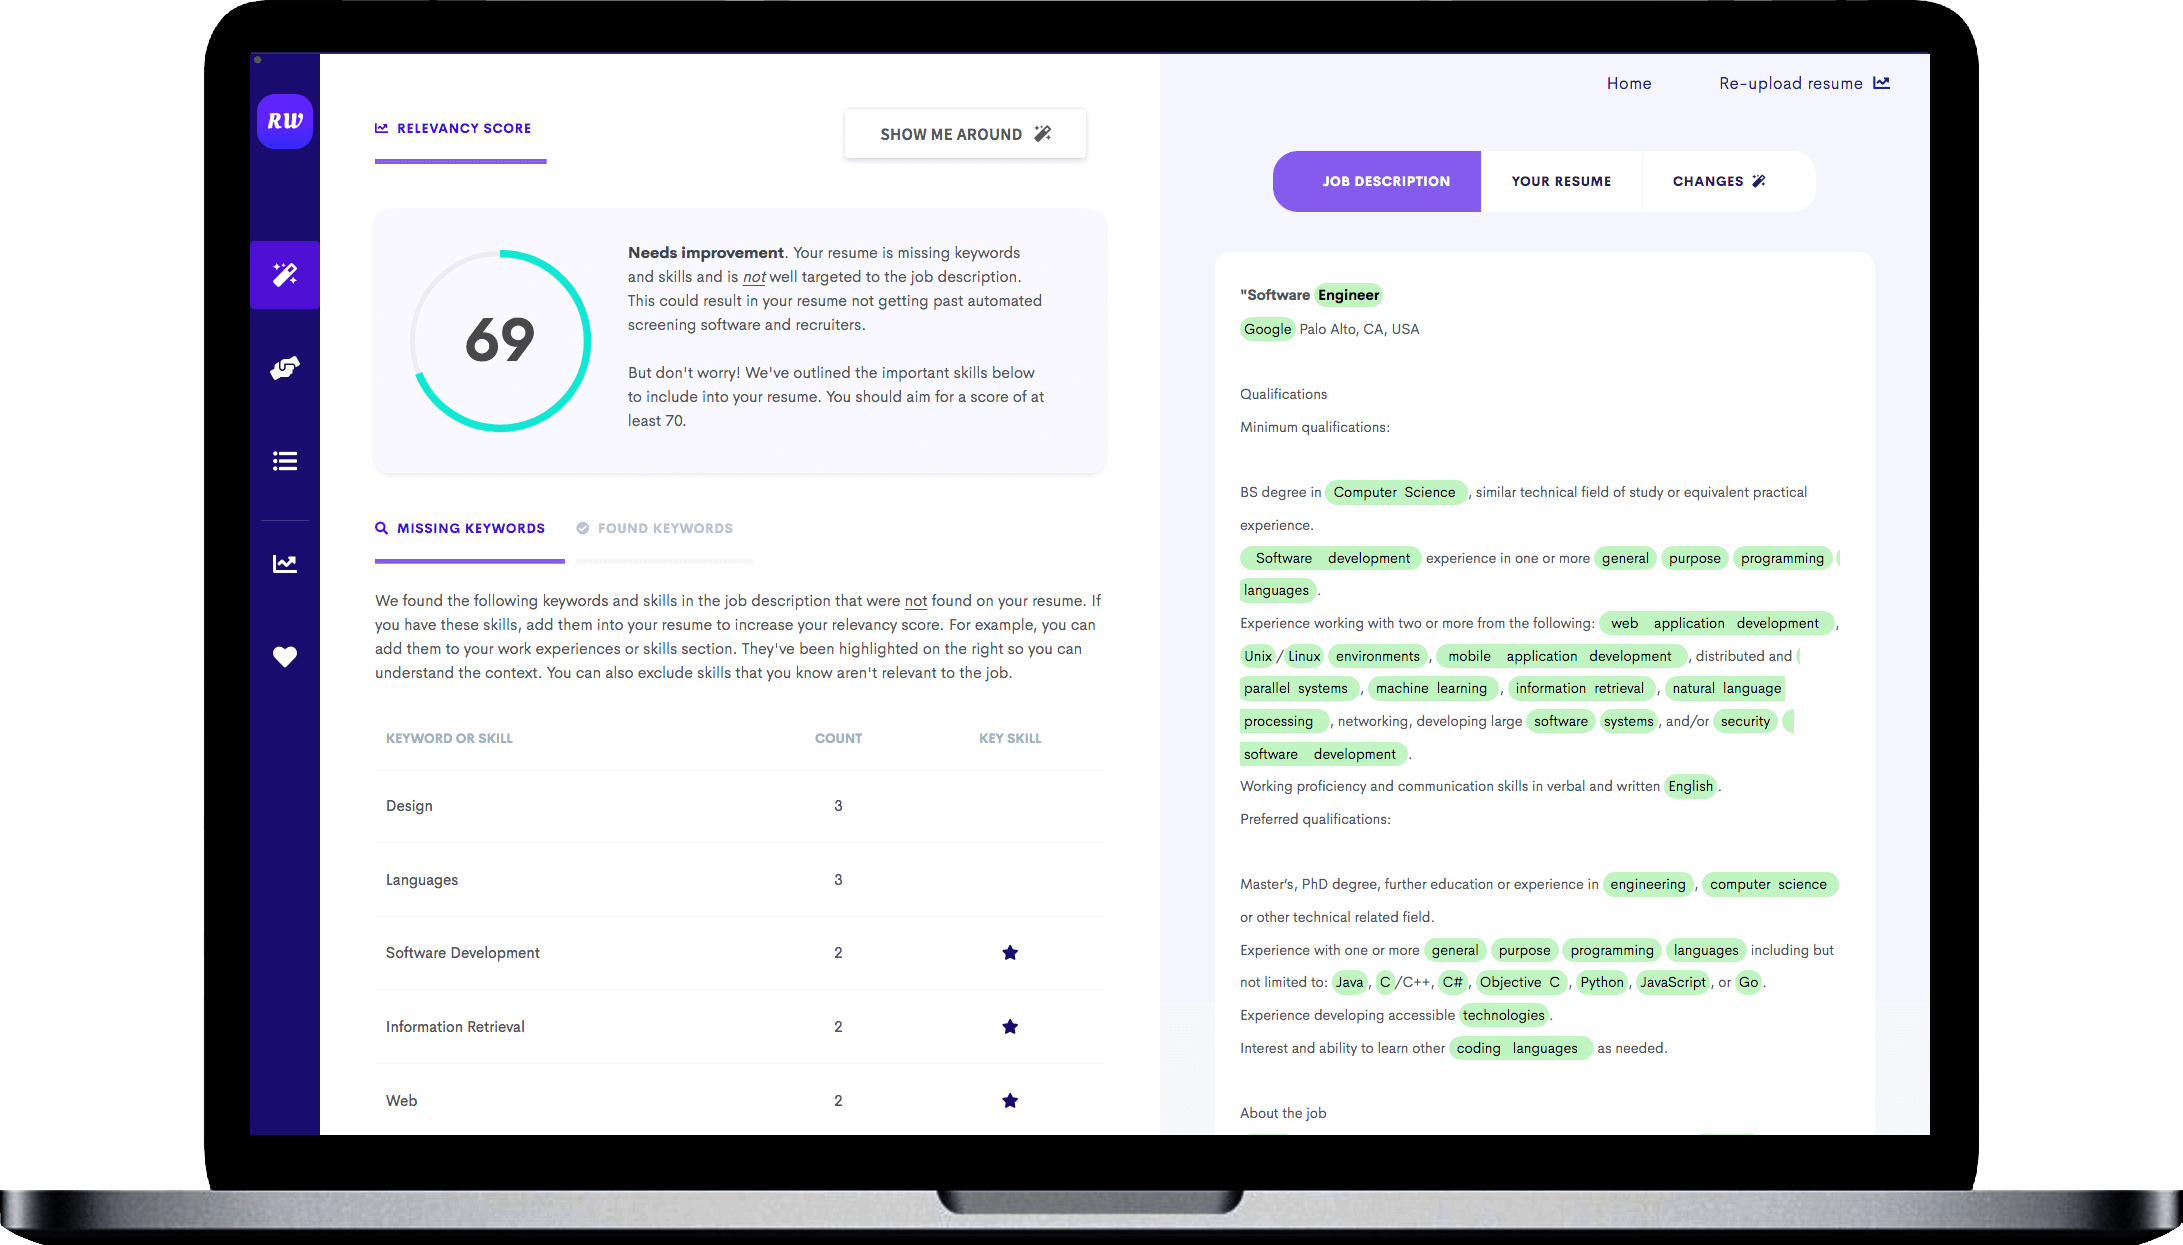 Targeted Resume is free AI-powered tool that will enable you to tailor your resume to that specific position